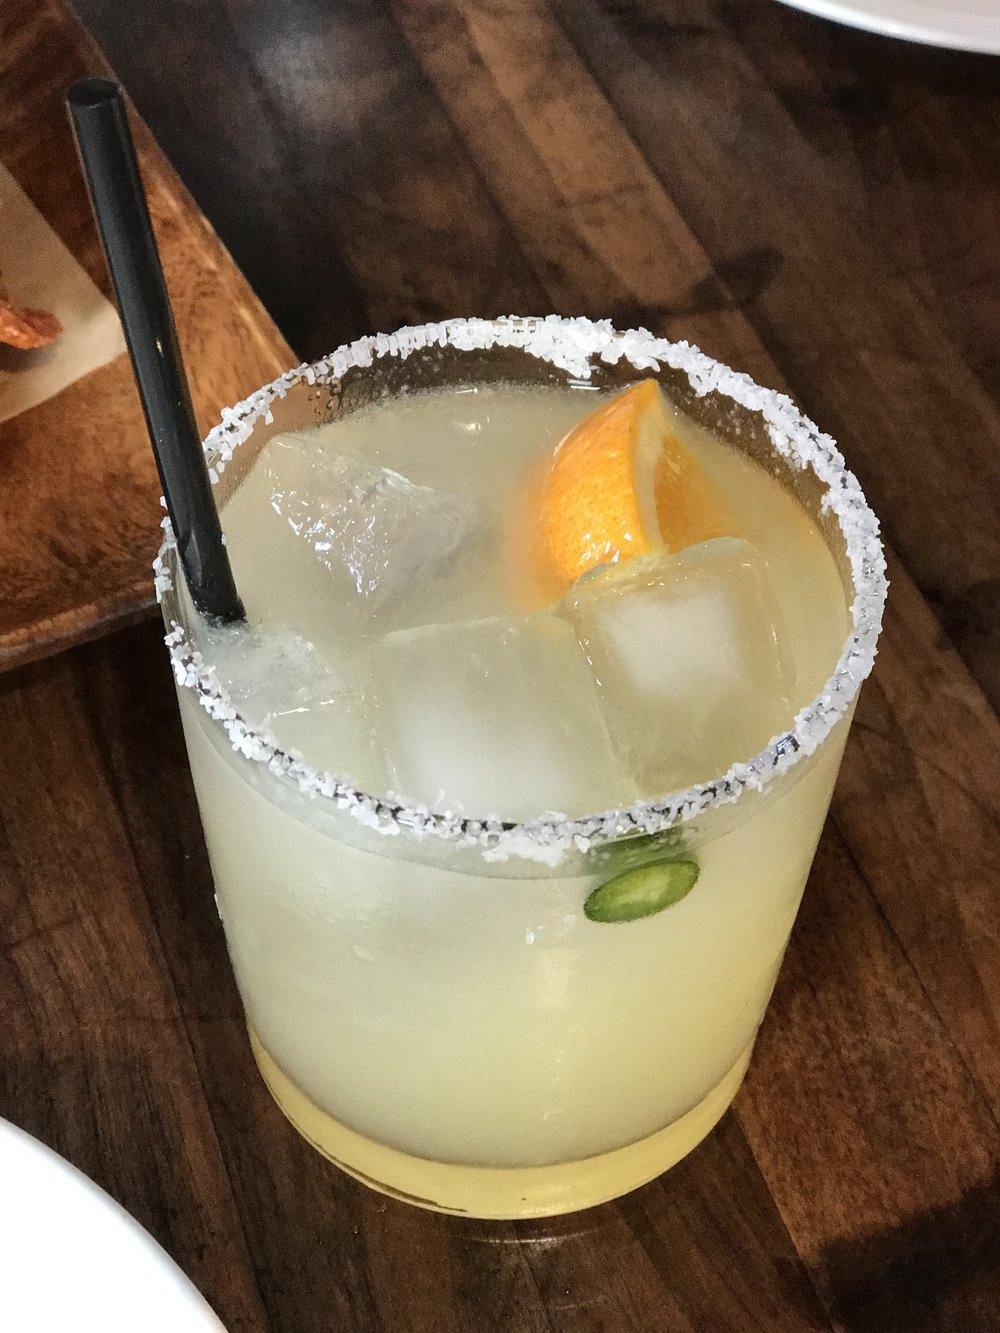 Avila's Heir - margarita with correlejo reposado, serrano, orange, and yuzu